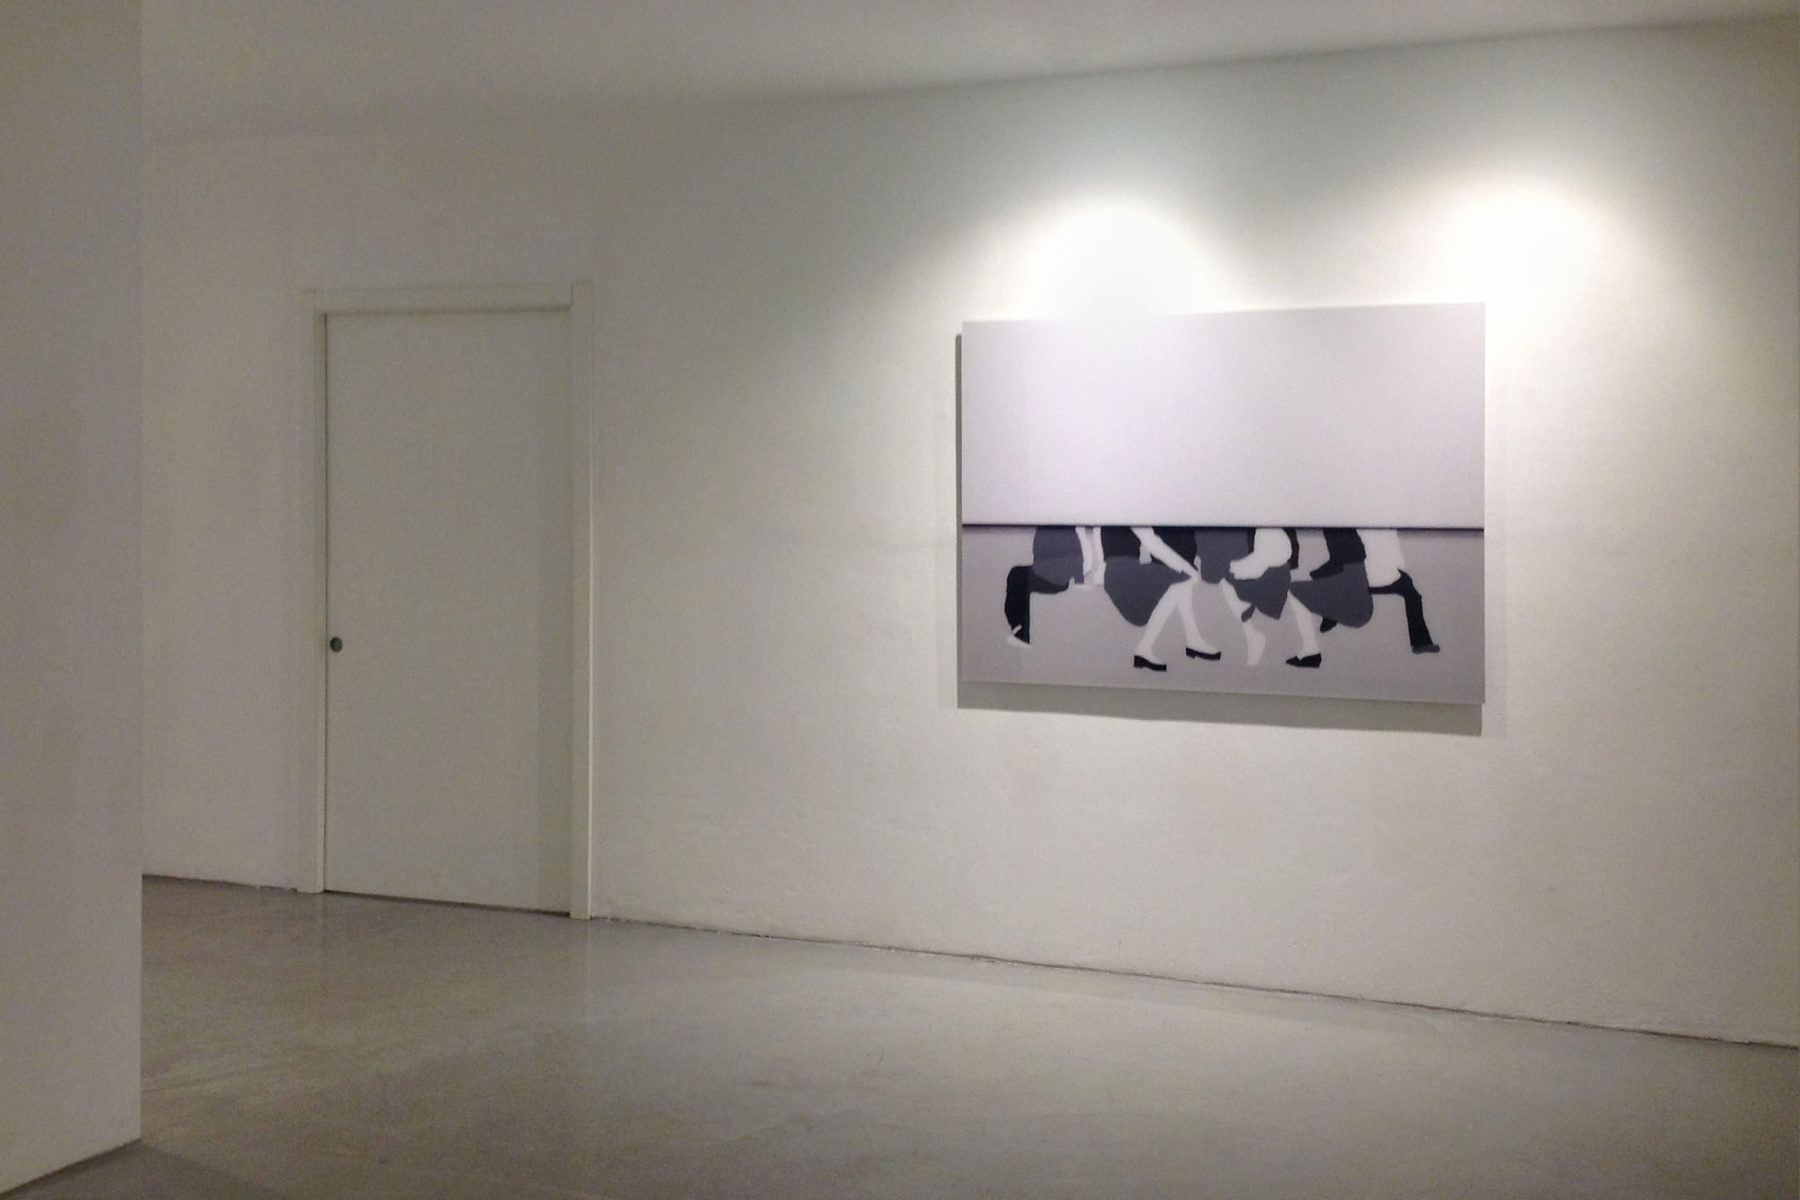 I. Eškinja, Infinity paper, 2013, show view at Deanesi Gallery, 01